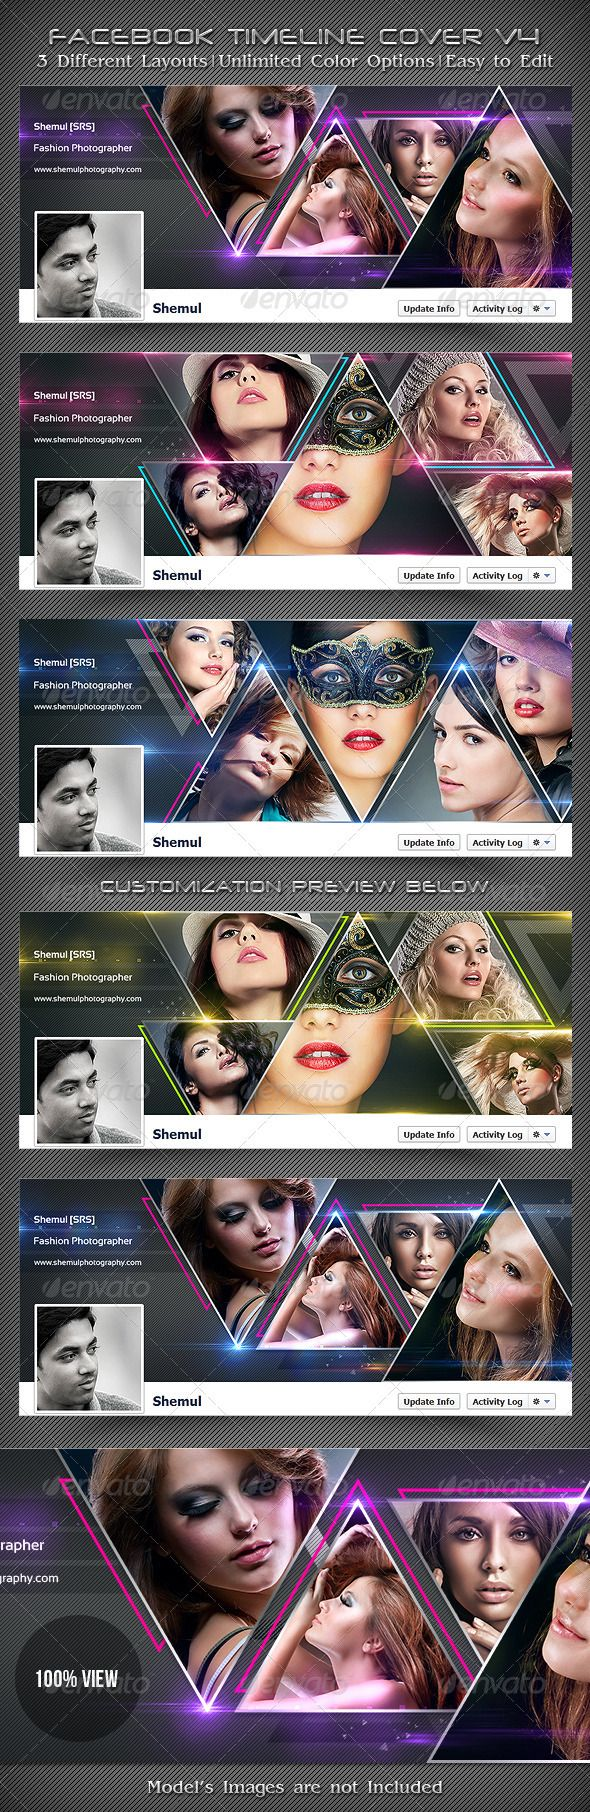 Photographer's FB Timeline Cover V4  #GraphicRiver          Photographer's Facebook Timeline Covers V4  This is a Collection of 3 Creative, Unique, Sexy & Stylish Facebook Timeline Cover Template. All of these are very useful for designers, developers, general users & also Specially for Photographers. Show & Present your designs, photographs, images in a Clean, Elegant & Decent way. Boost up your fans & sales by putting these attractive templates on your Facebook Profile's Timeline or…